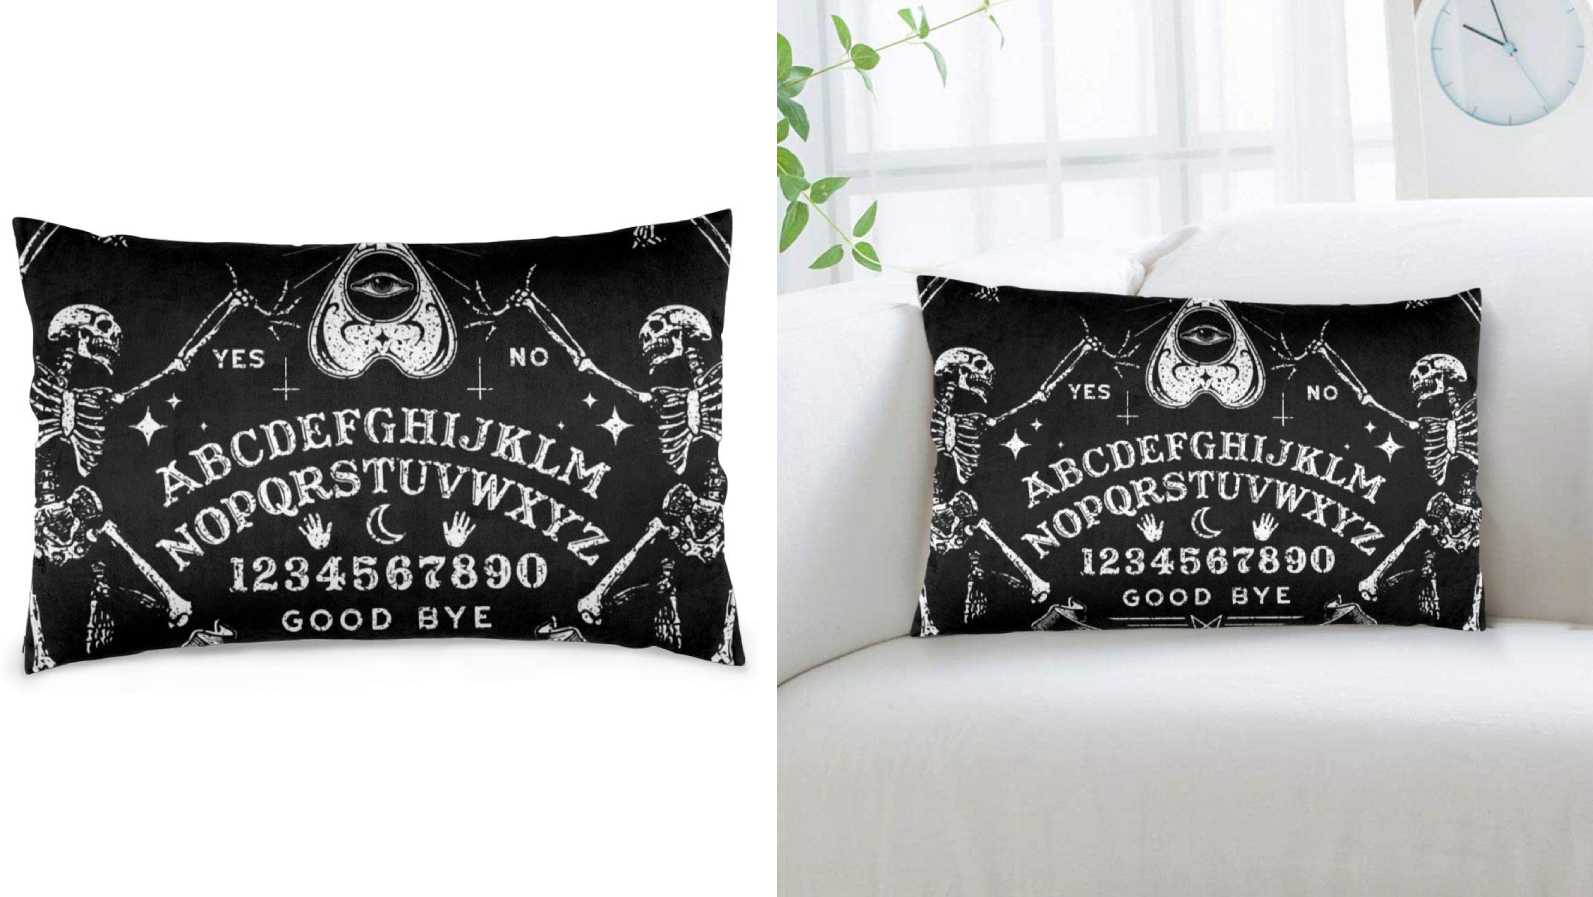 This pillow is almost too scary to sit on.